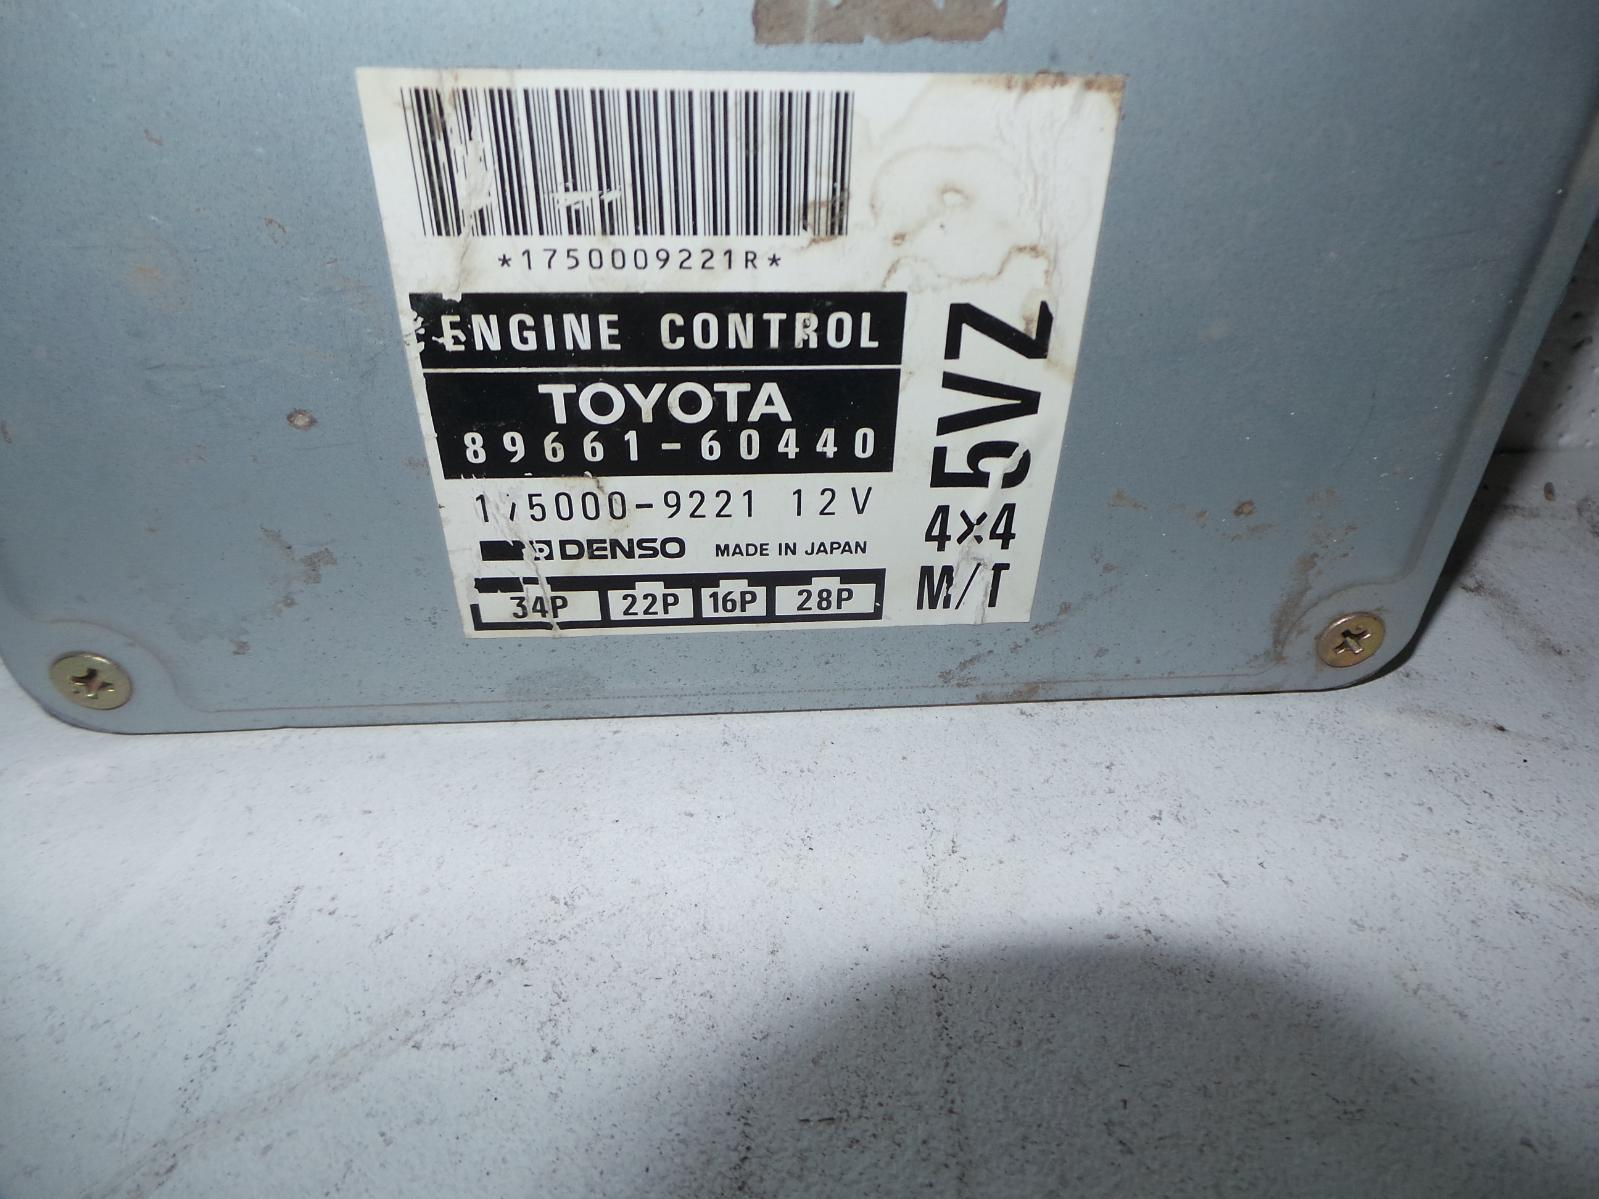 TOYOTA PRADO, Ecu, ENGINE ECU, 3.4, PETROL, MANUAL, P/N 8966160440, ECU ONLY, 95 SERIES, 07/96-12/02